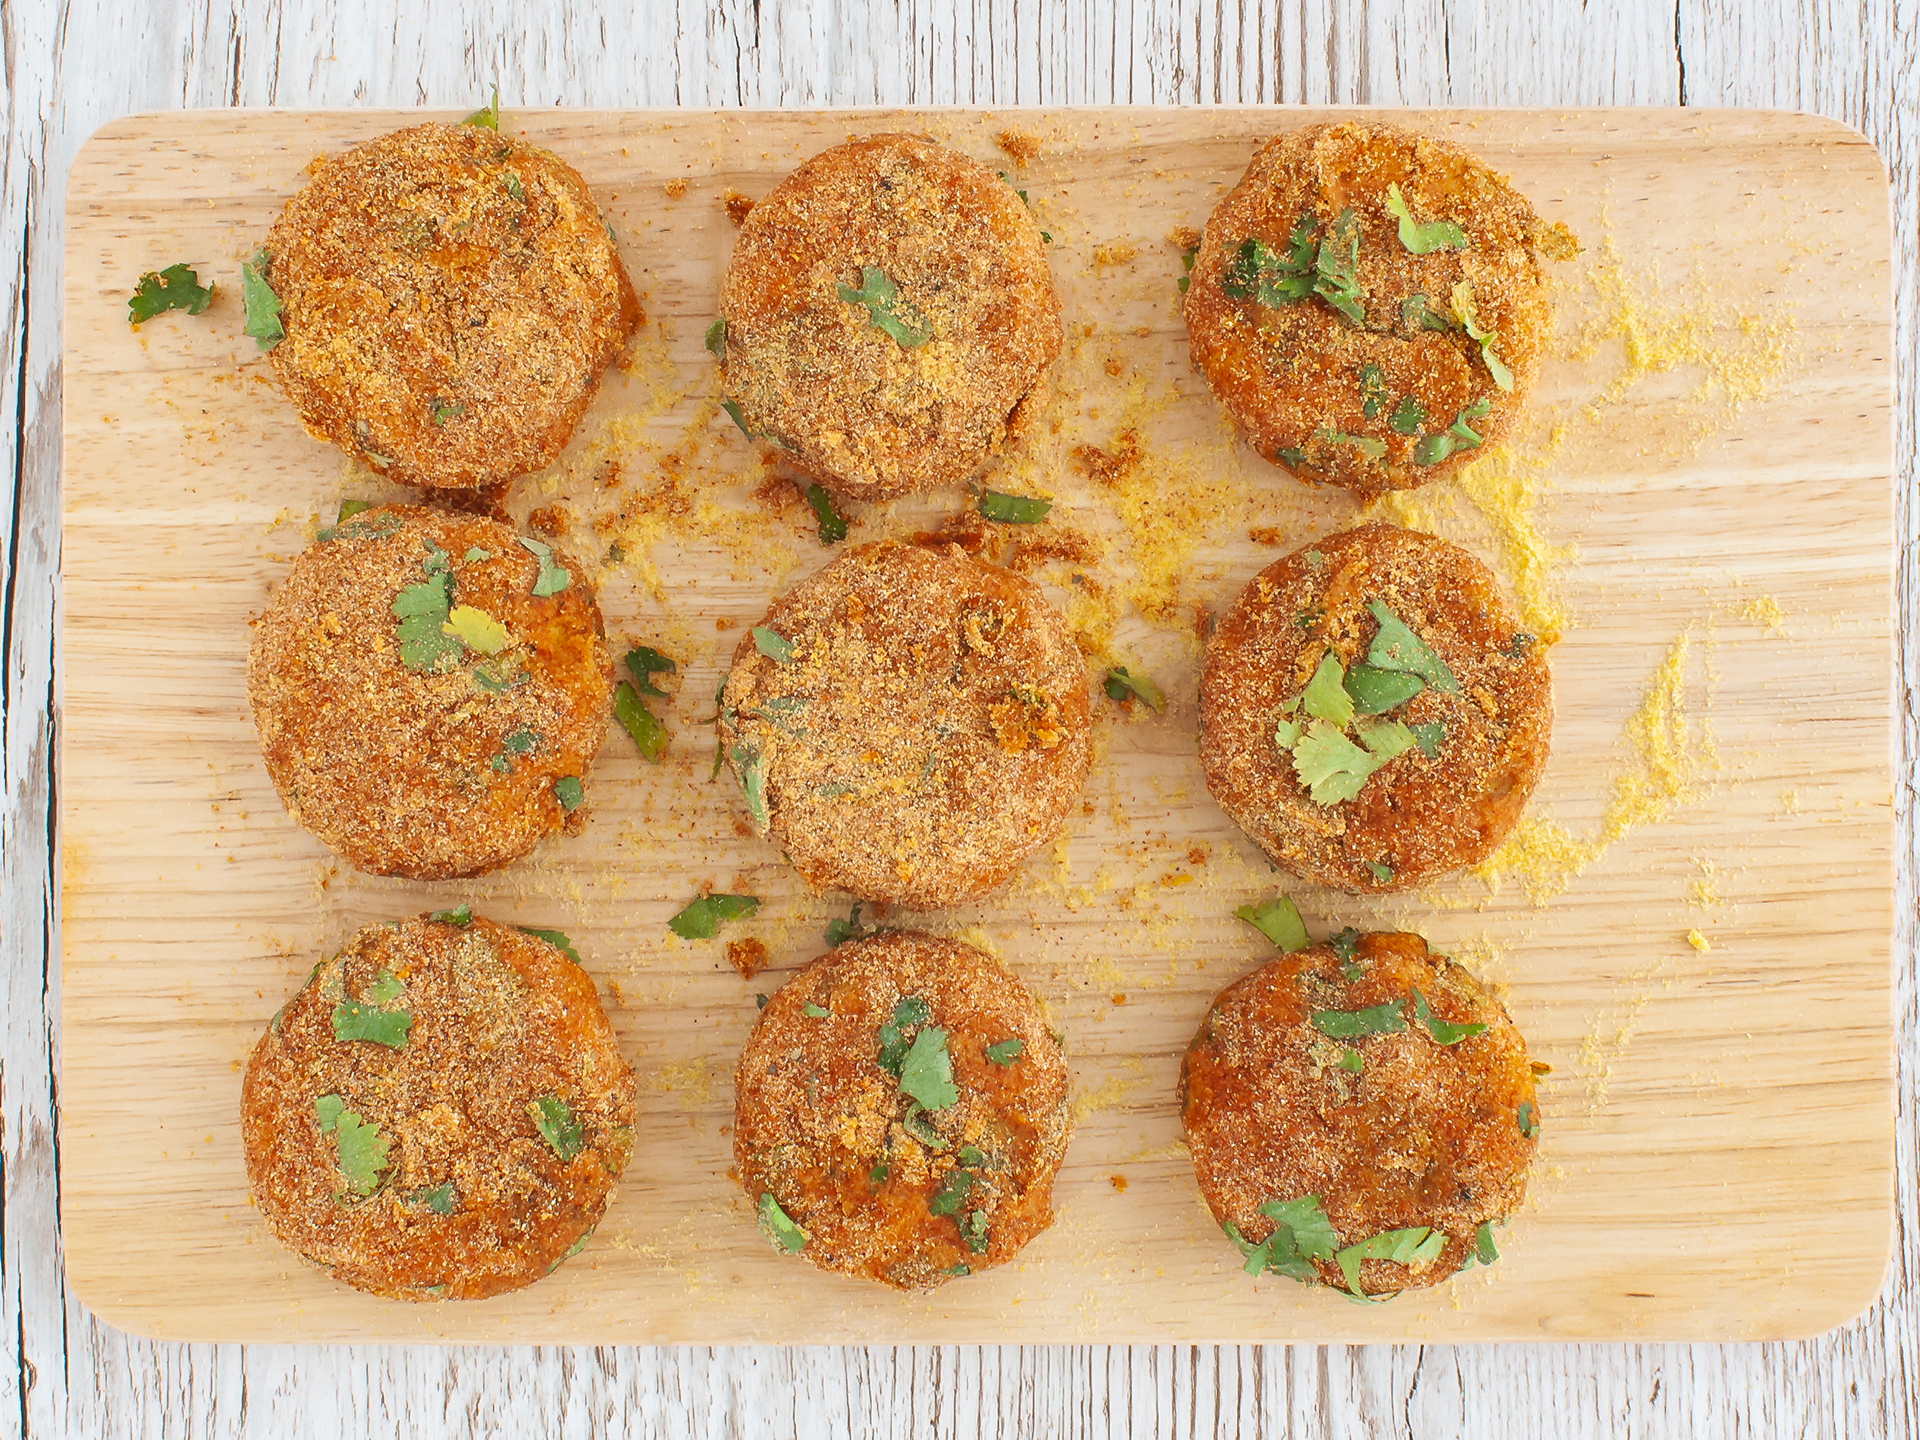 Step 3.2 of Baked Lentil and Sweet Potato Croquettes